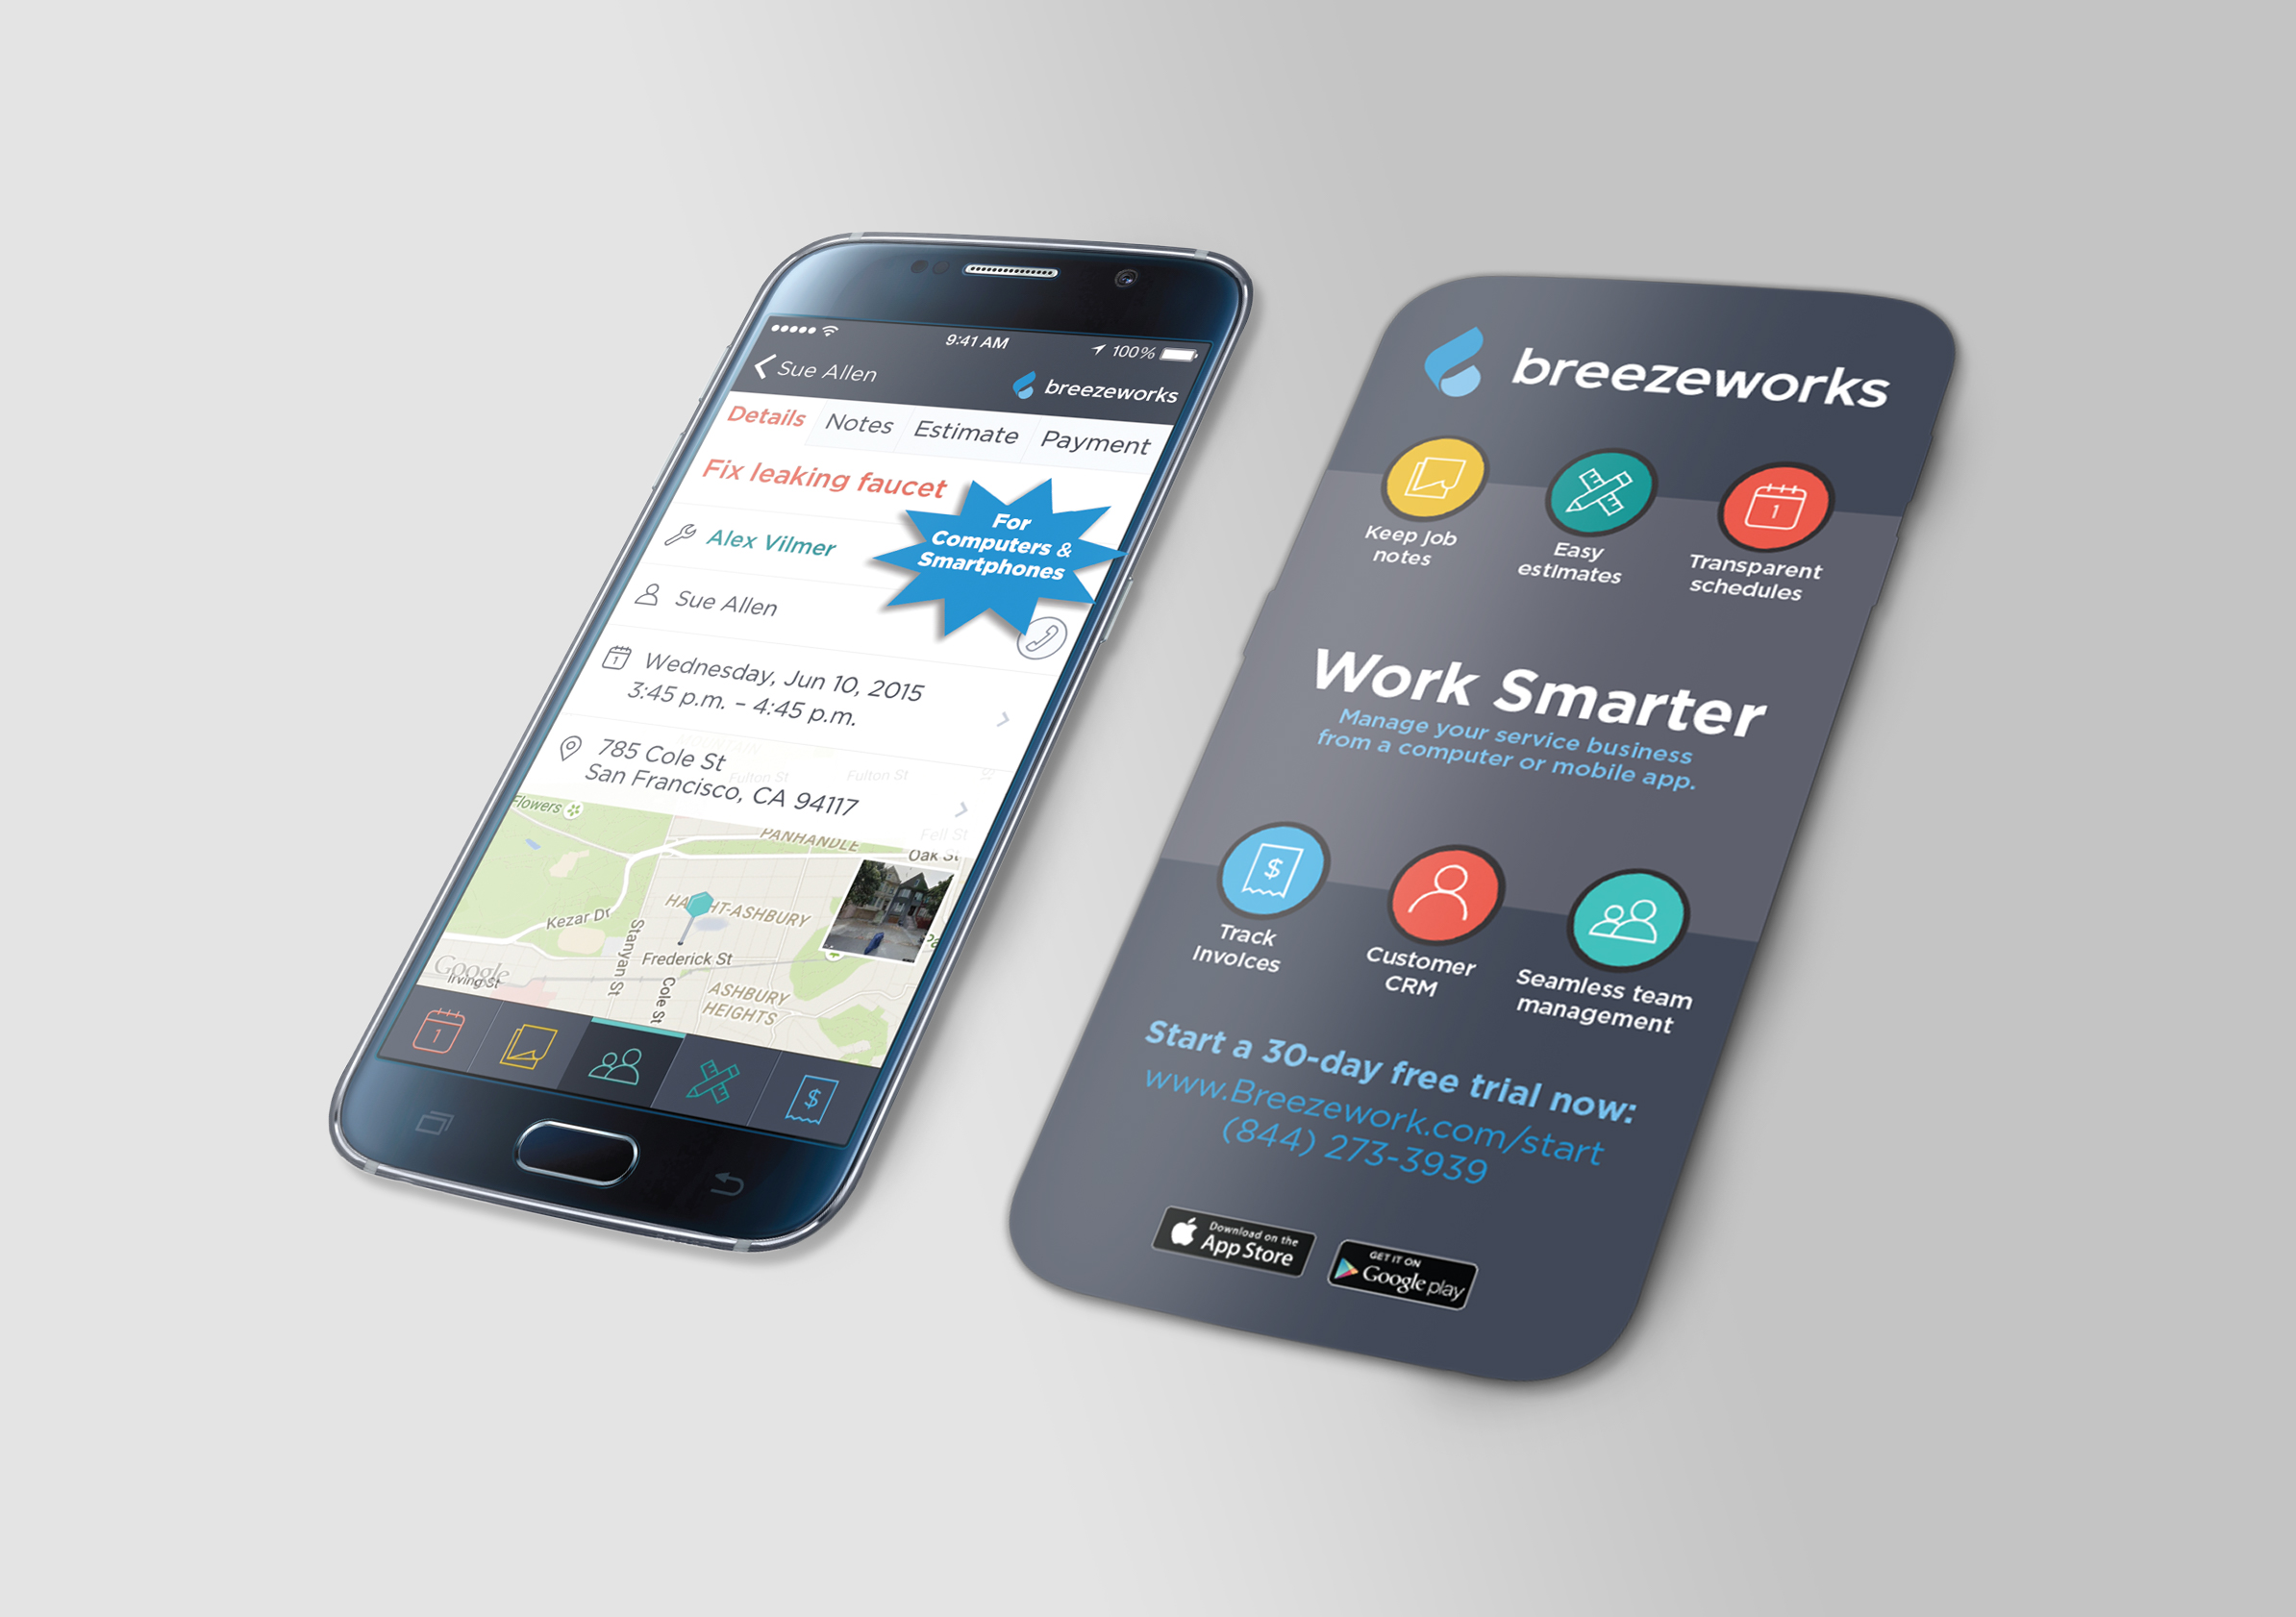 Breezeworks Galaxy S6 Promo Card